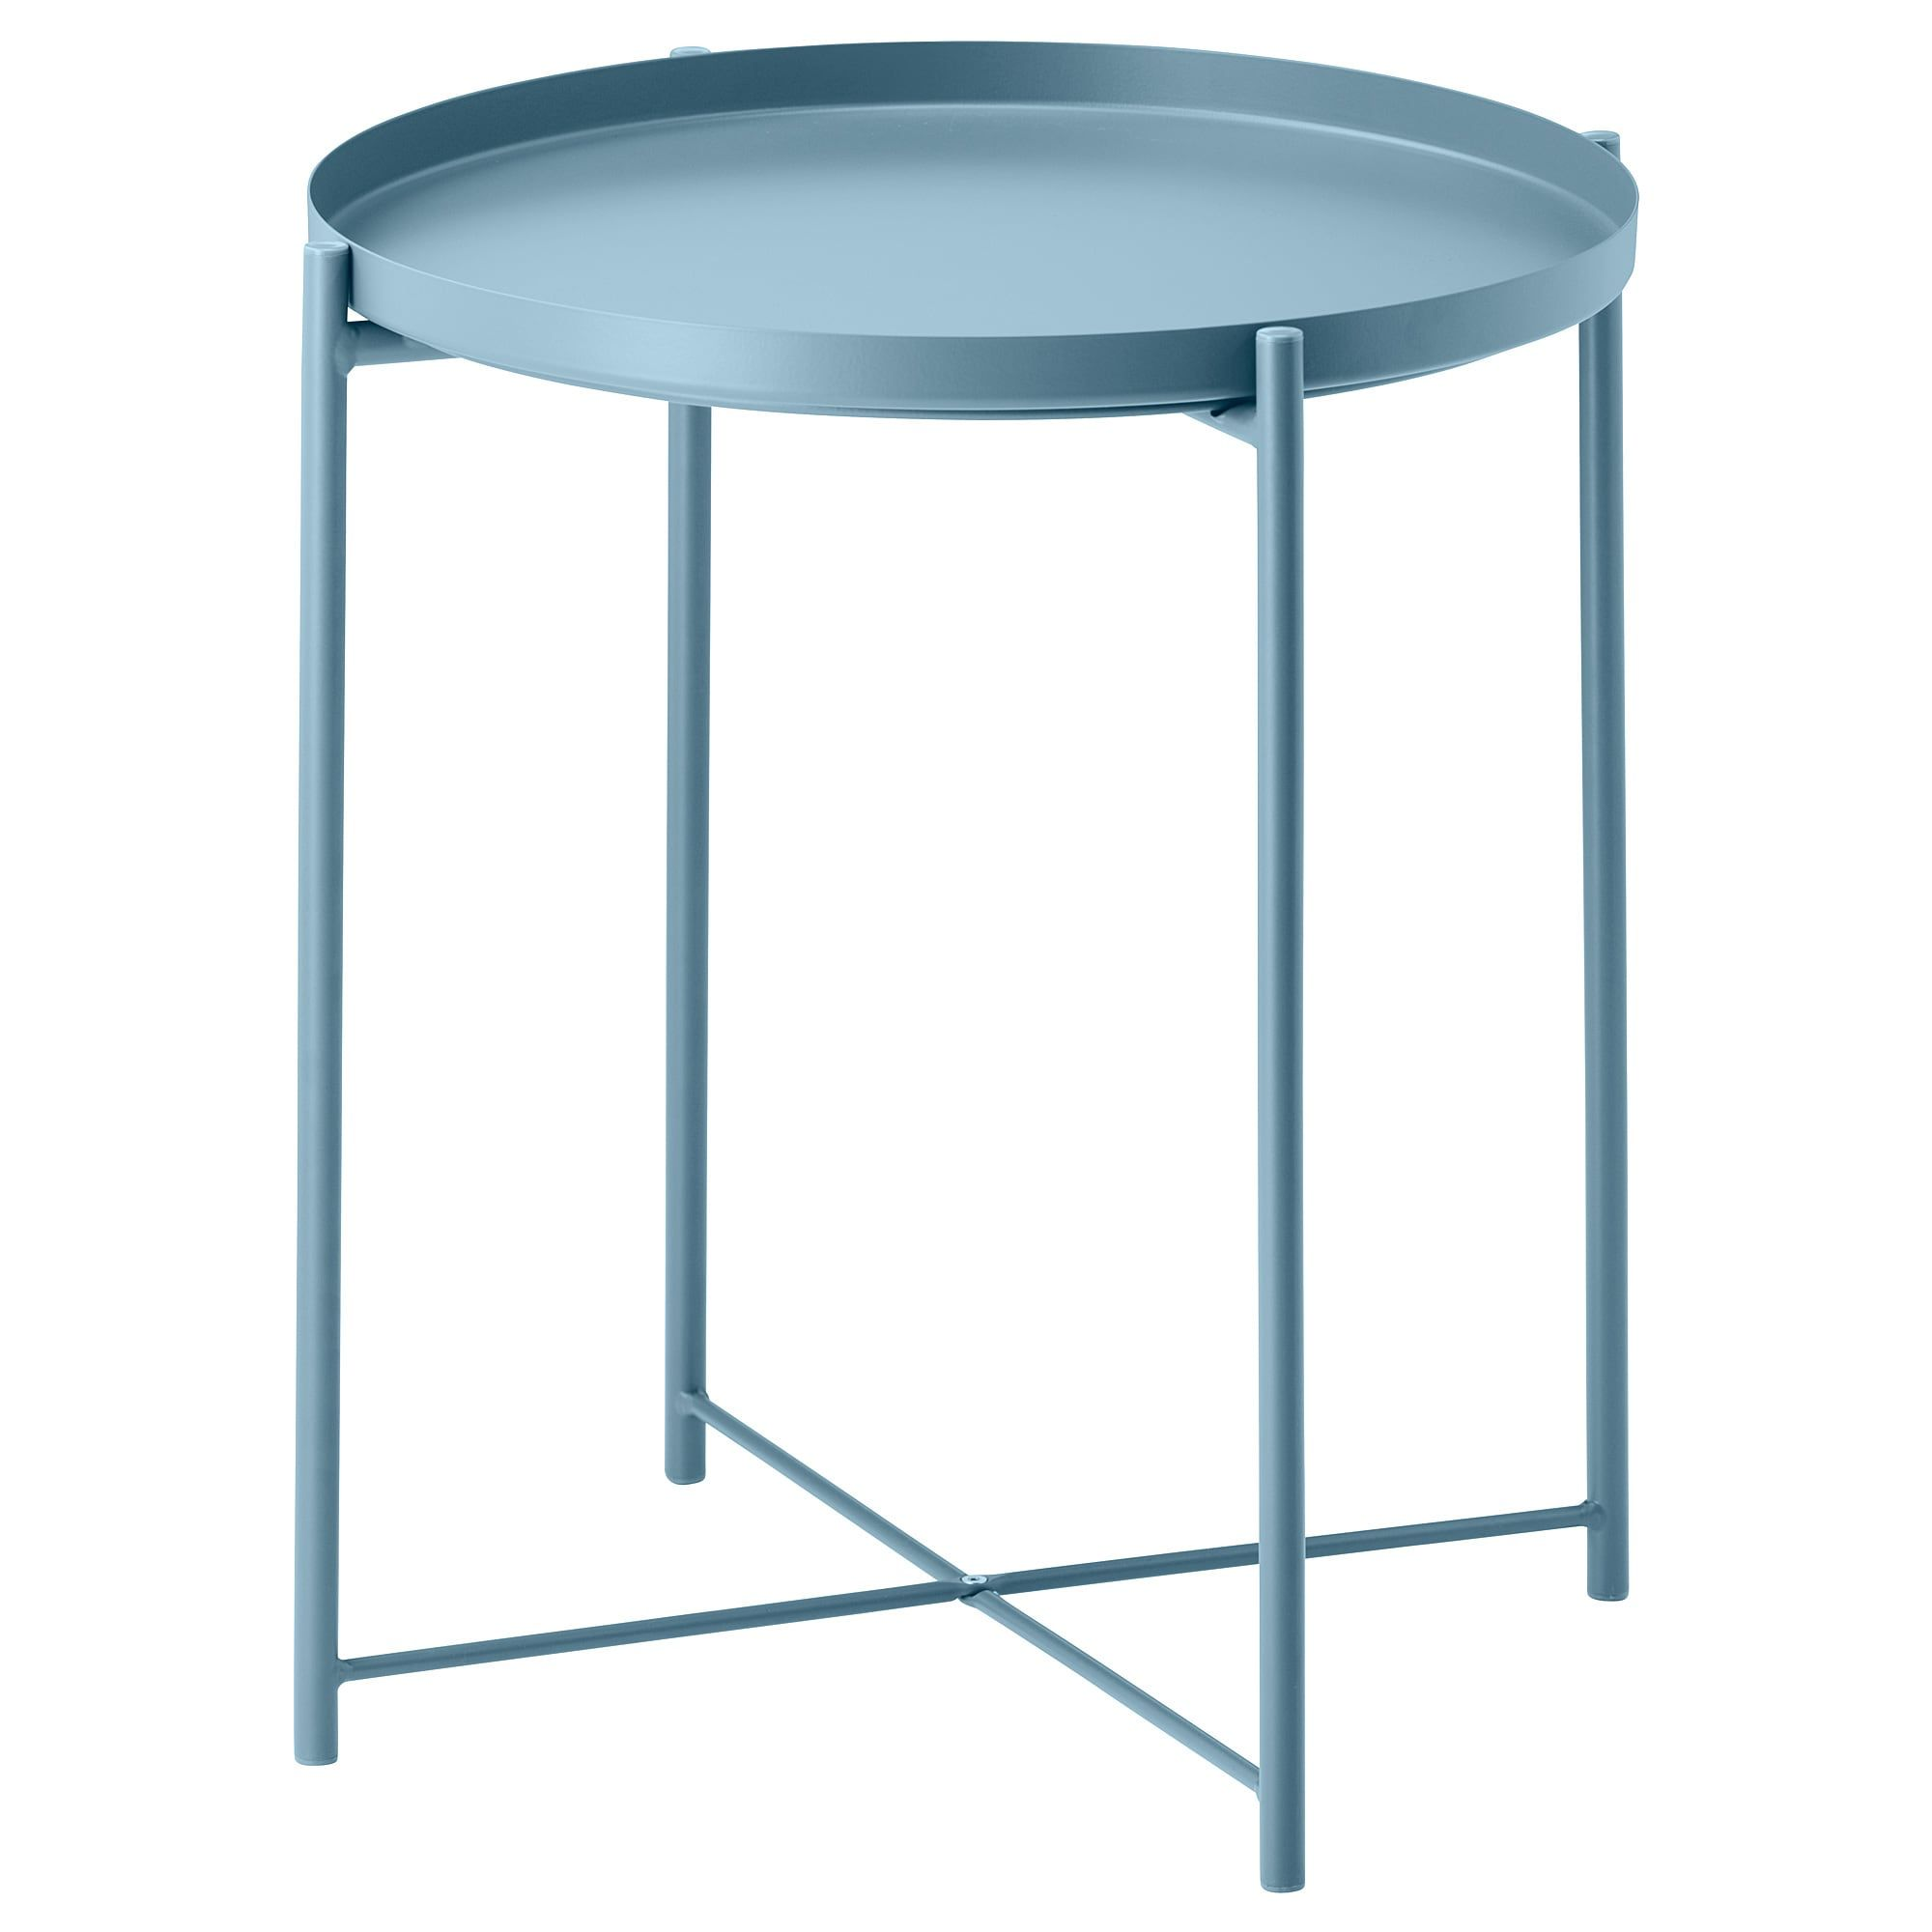 Ikea Small Round Tables